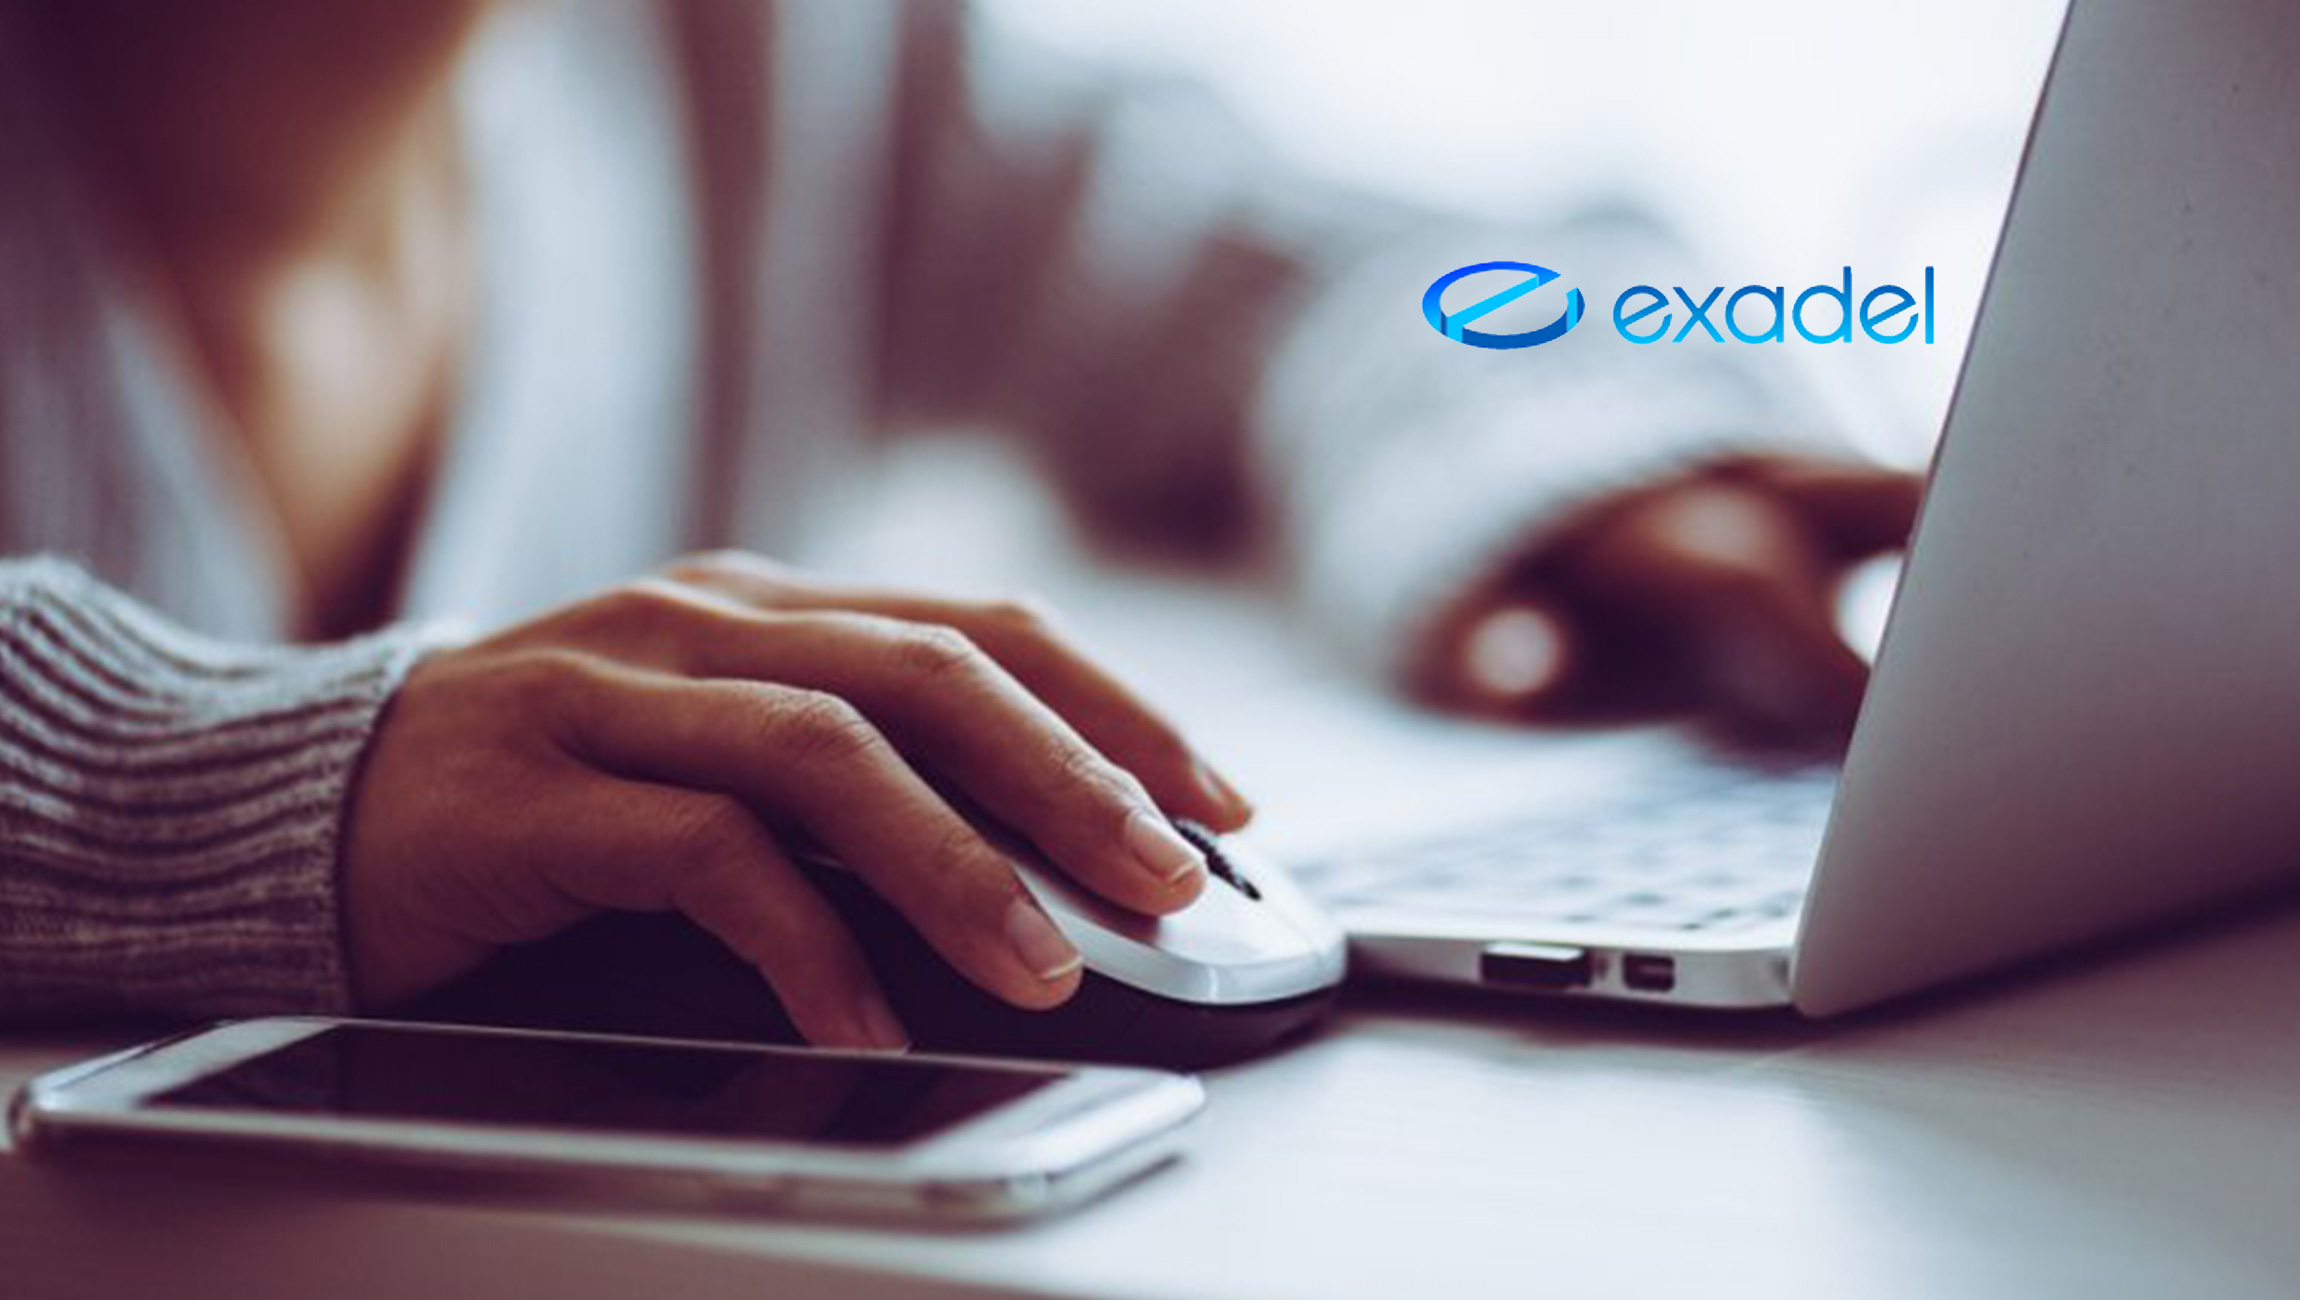 Exadel Launches Adobe Experience Manager Authoring Toolkit